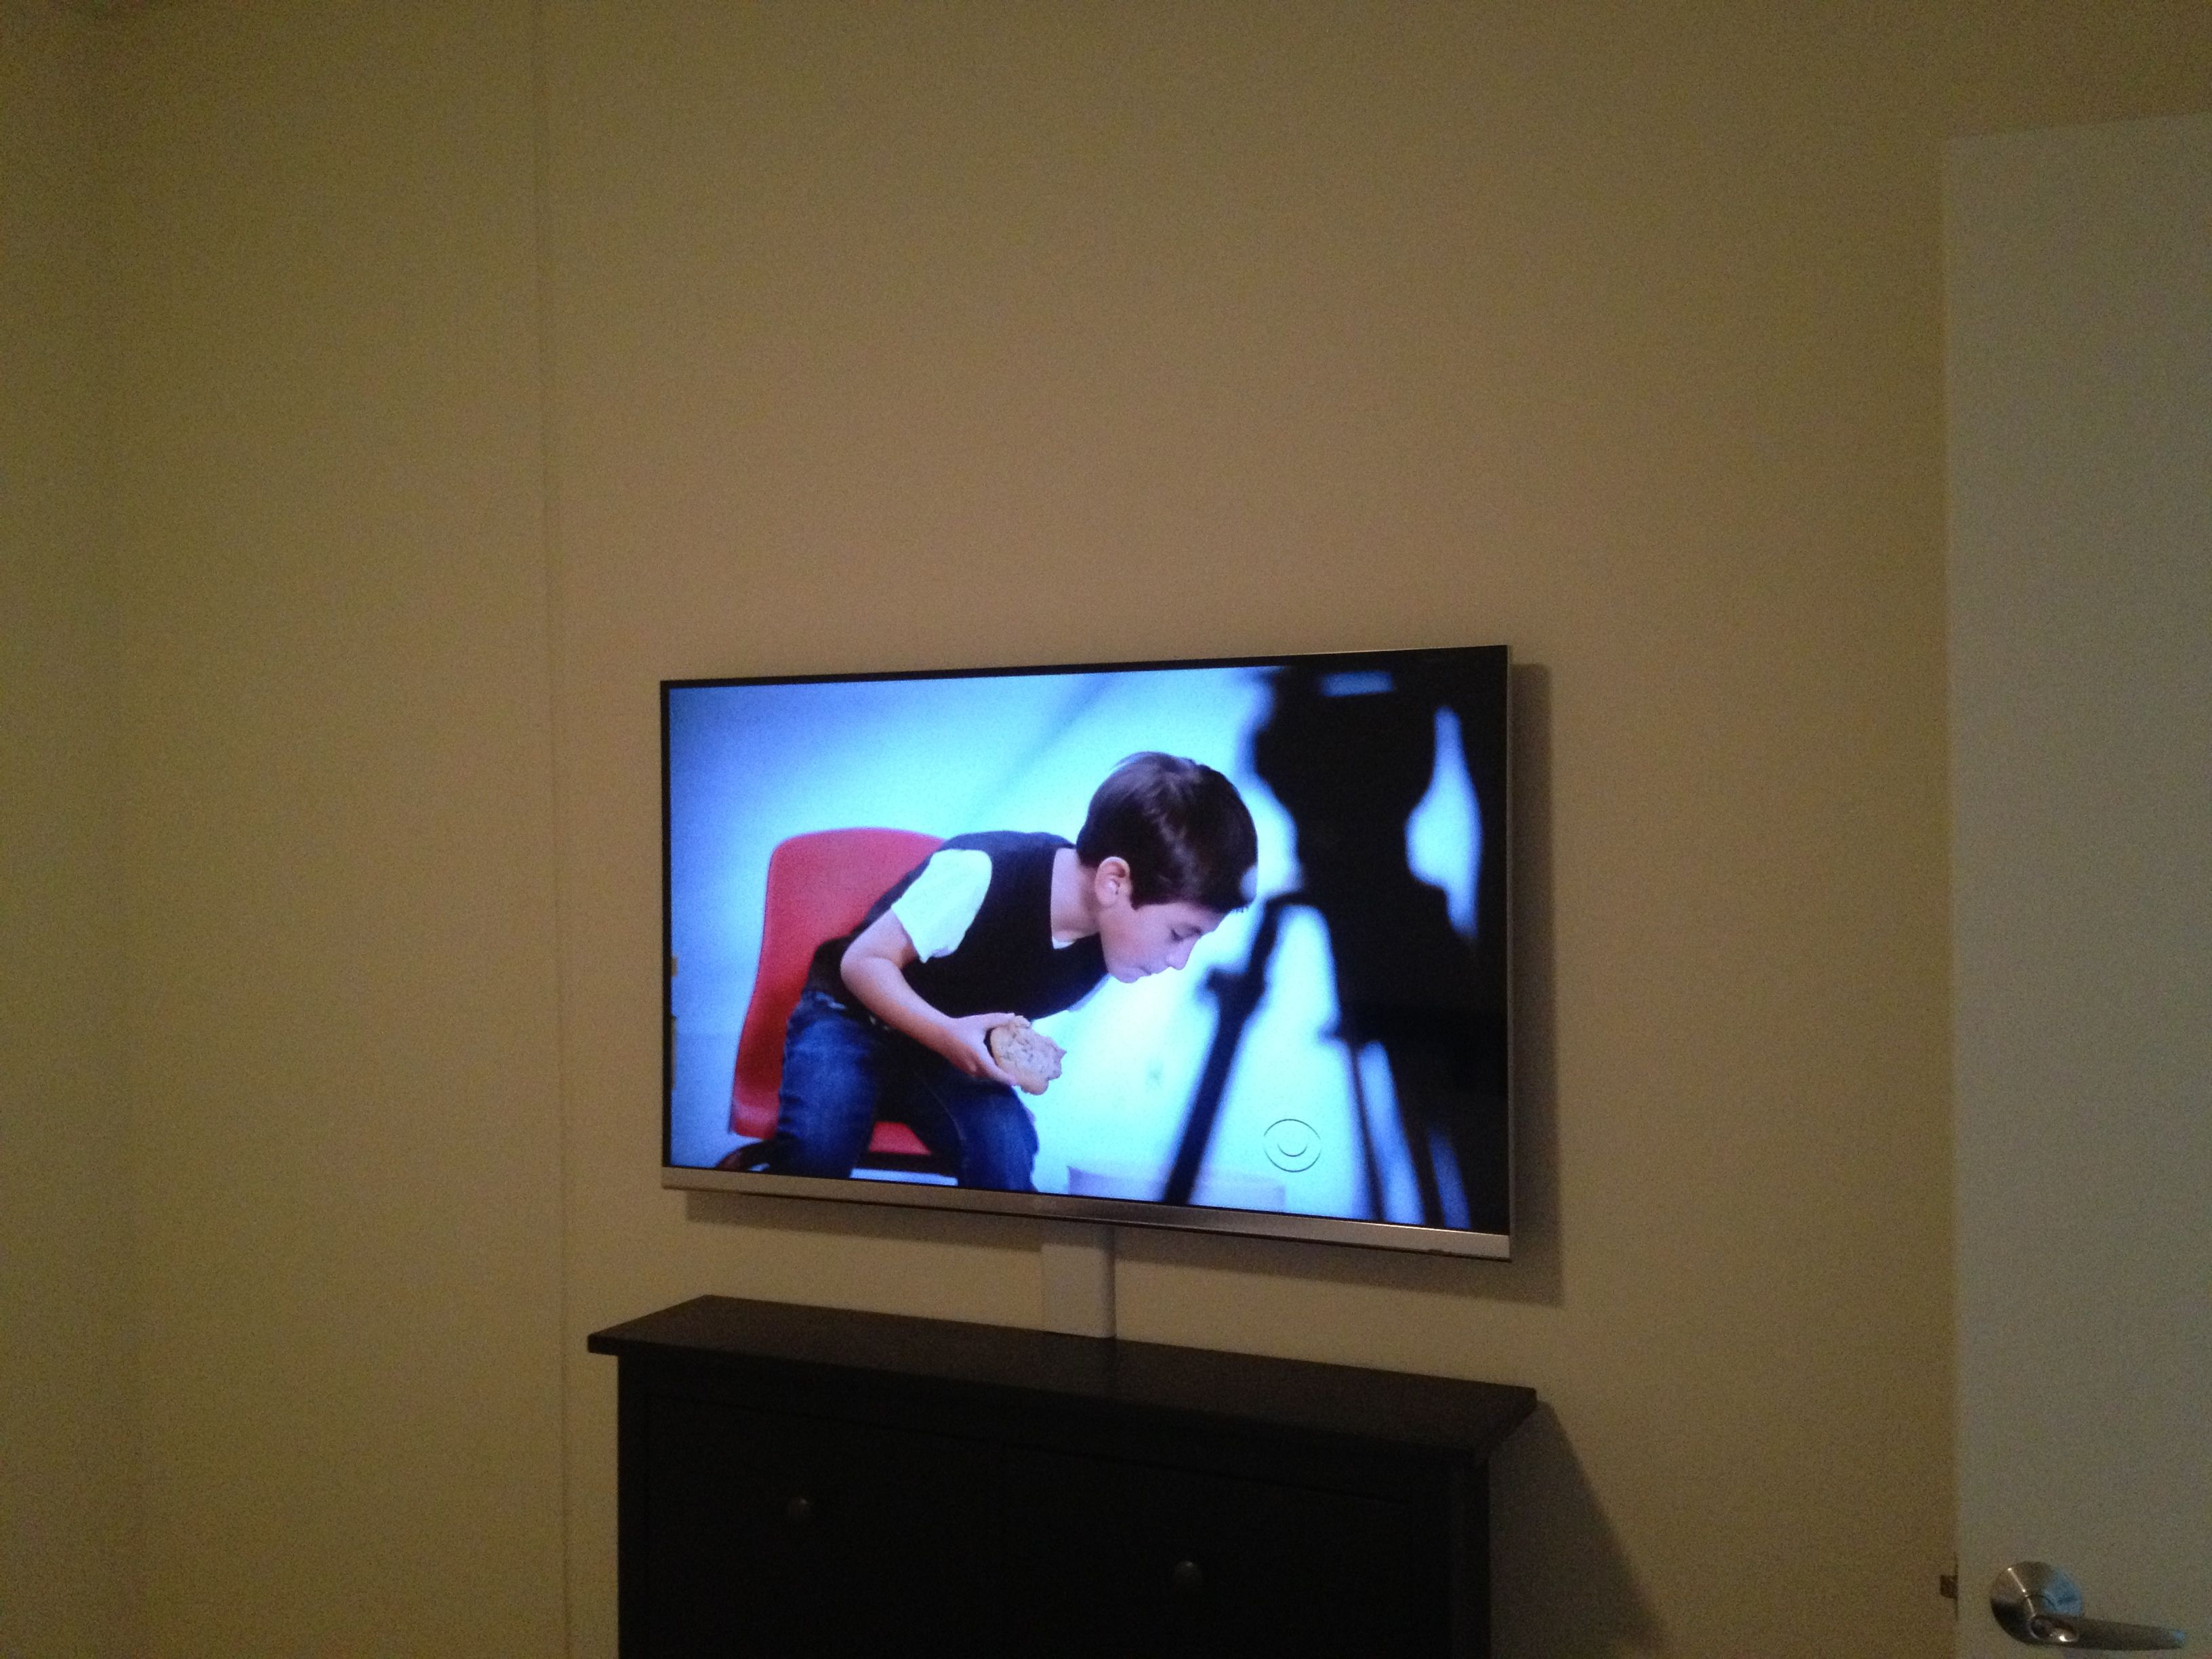 Charlotte Home Theater Installation Projector Surround Wiring Tv Speakers For Mounting Flatscreen